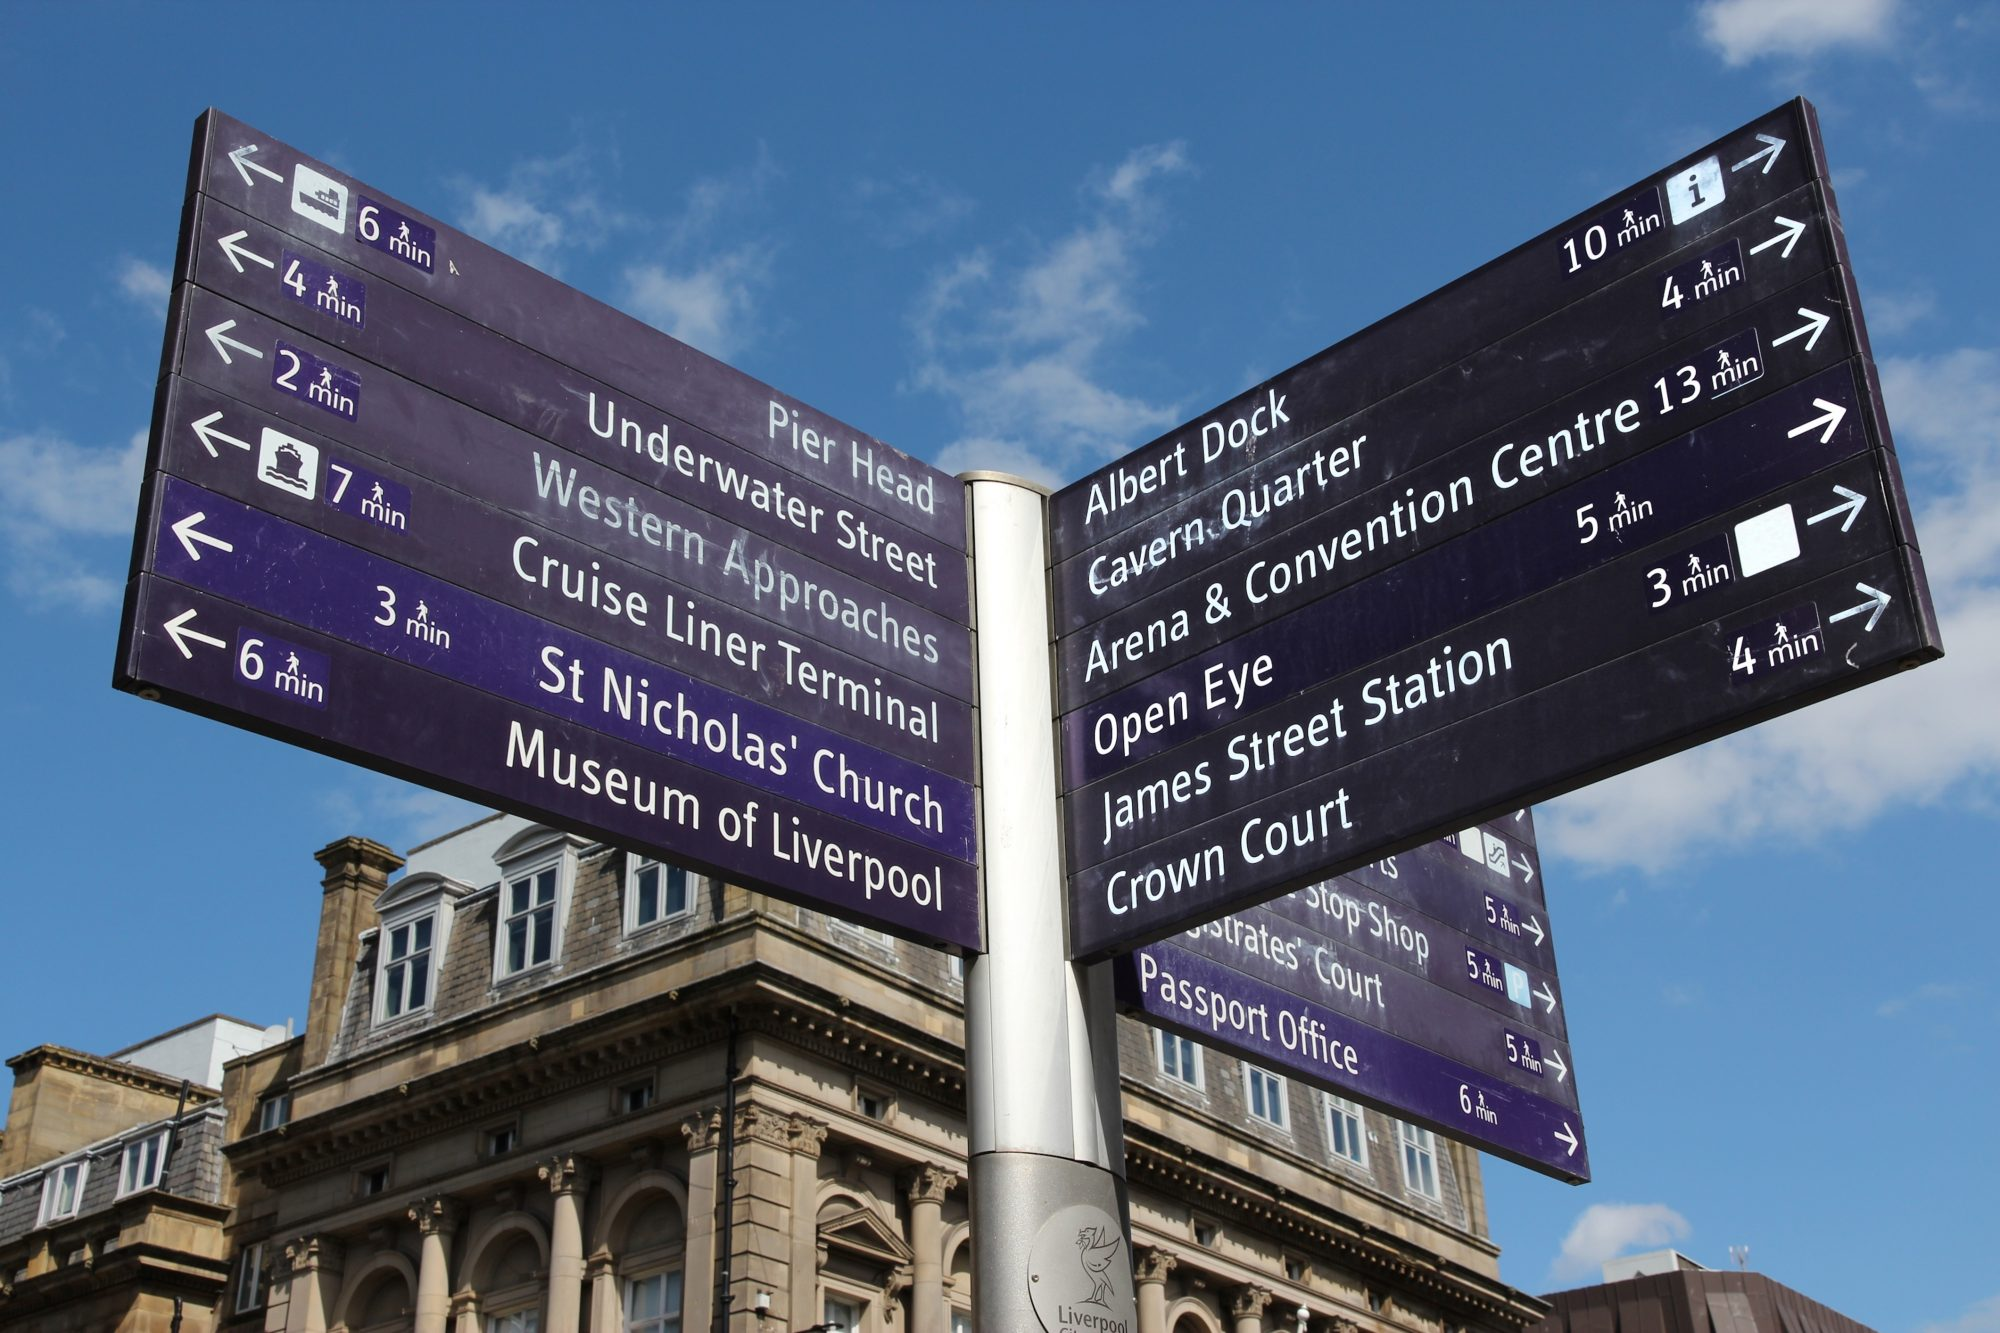 Wayfinding: Lack of consistency can lead to a communication breakdown